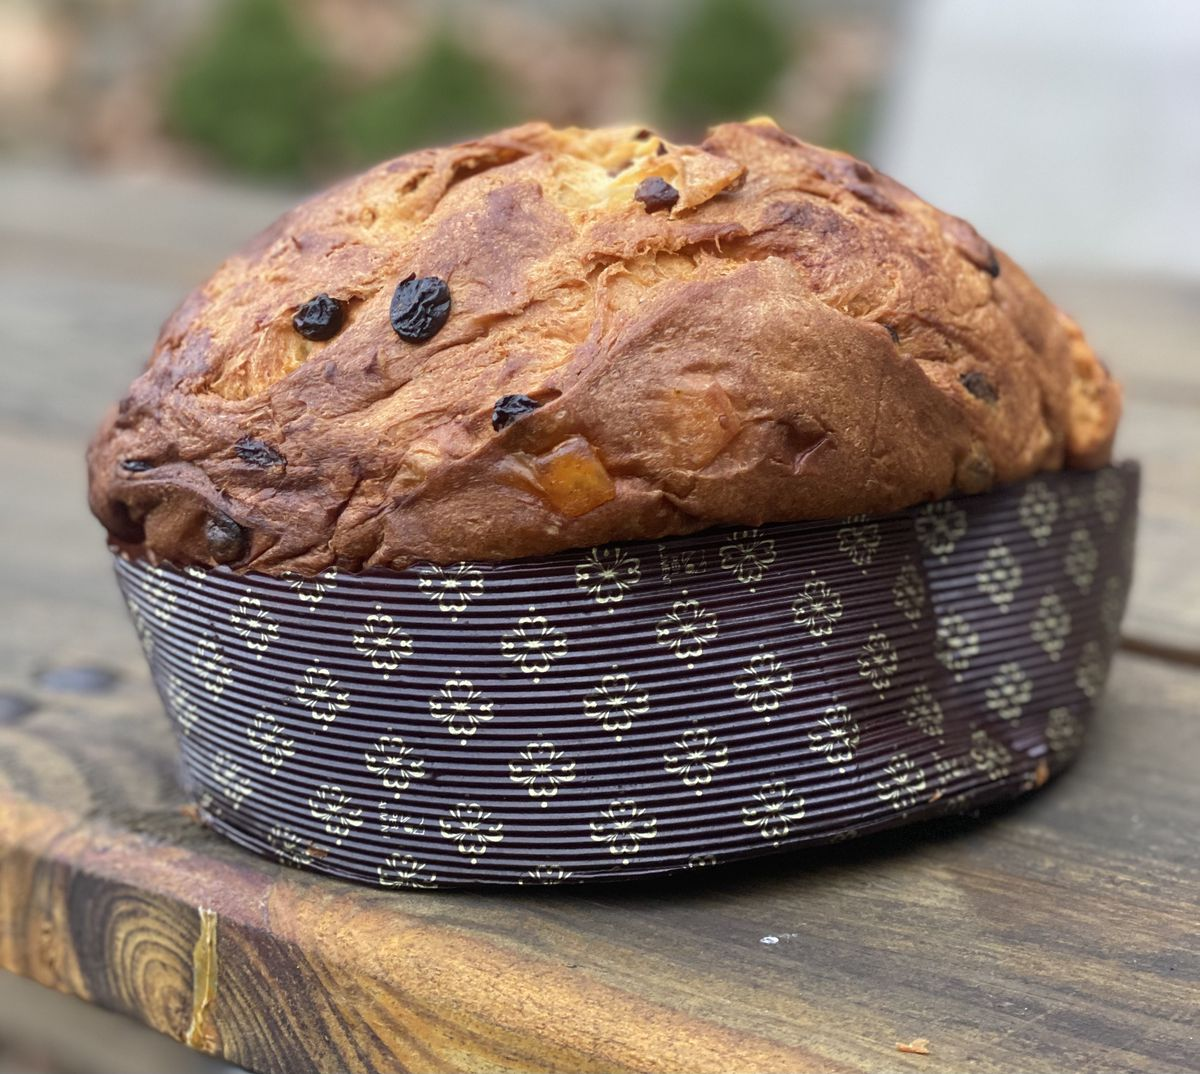 Bread & Salt's panettone sits on a picnic table; raisins and candied oranges are visible near the dome of the loaf